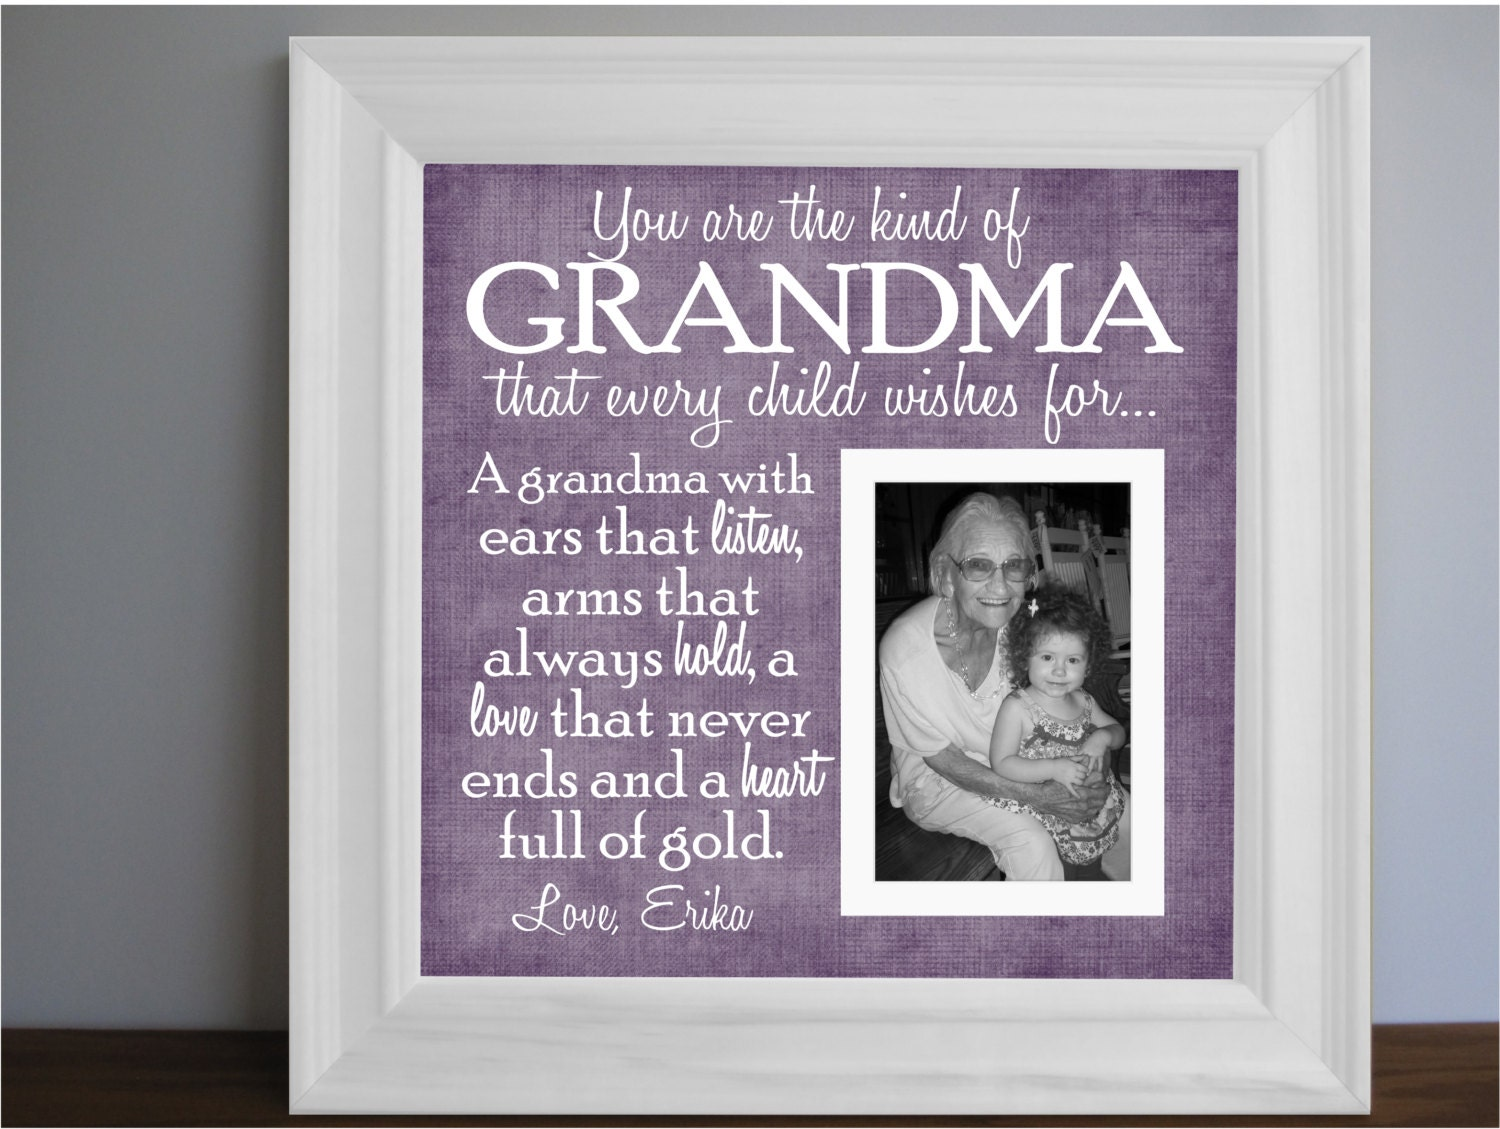 Grandmother Frame Grandma Picture Frame By Framedaeon On Etsy